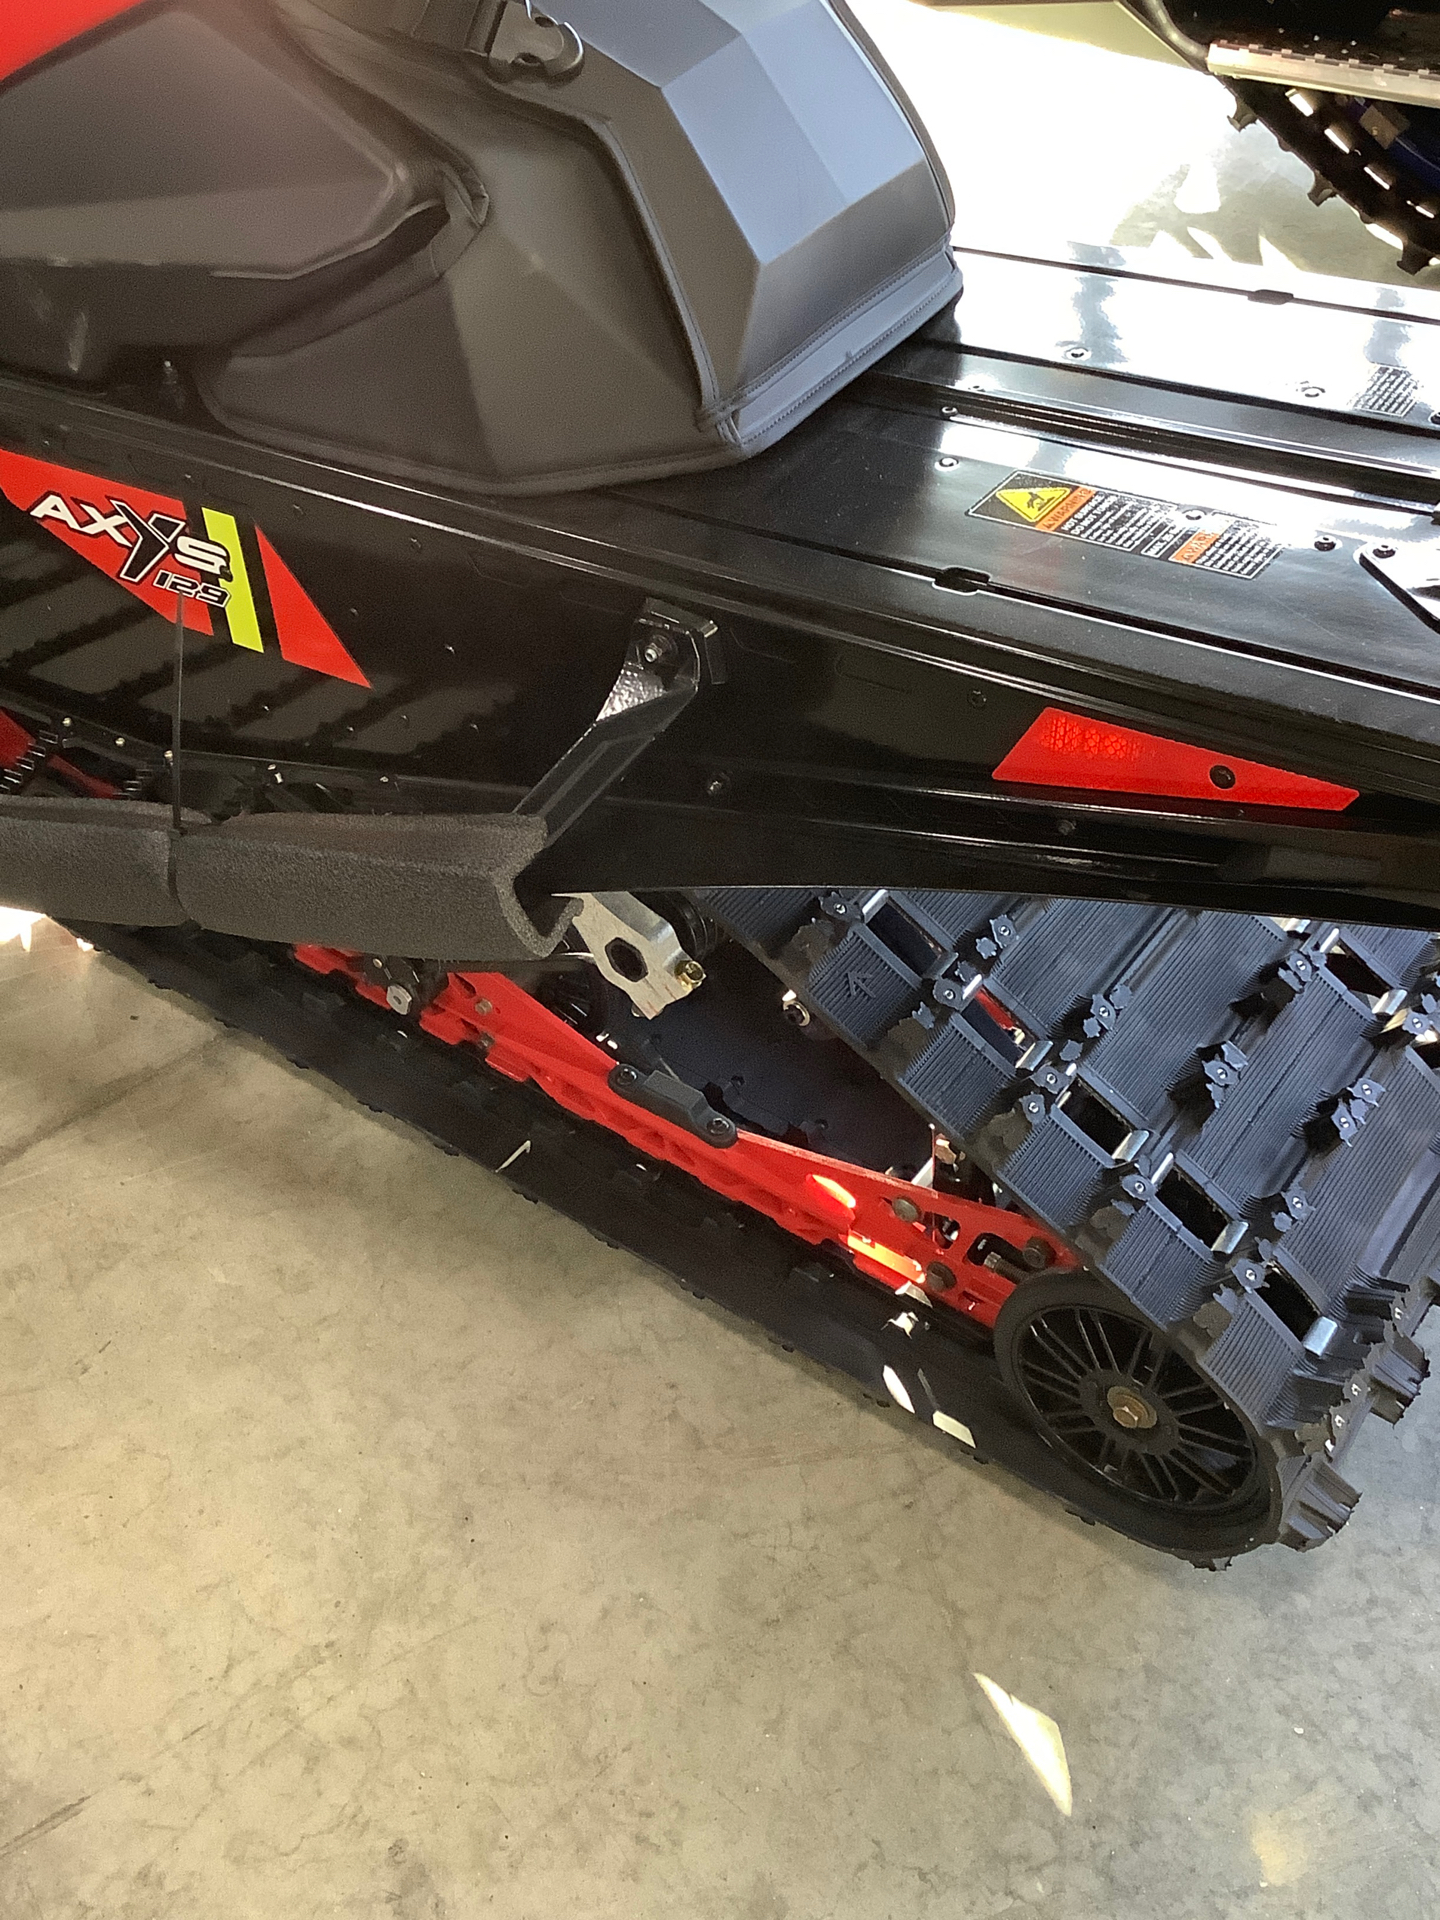 2021 Polaris 850 Indy XC 129 Factory Choice in Lewiston, Maine - Photo 5